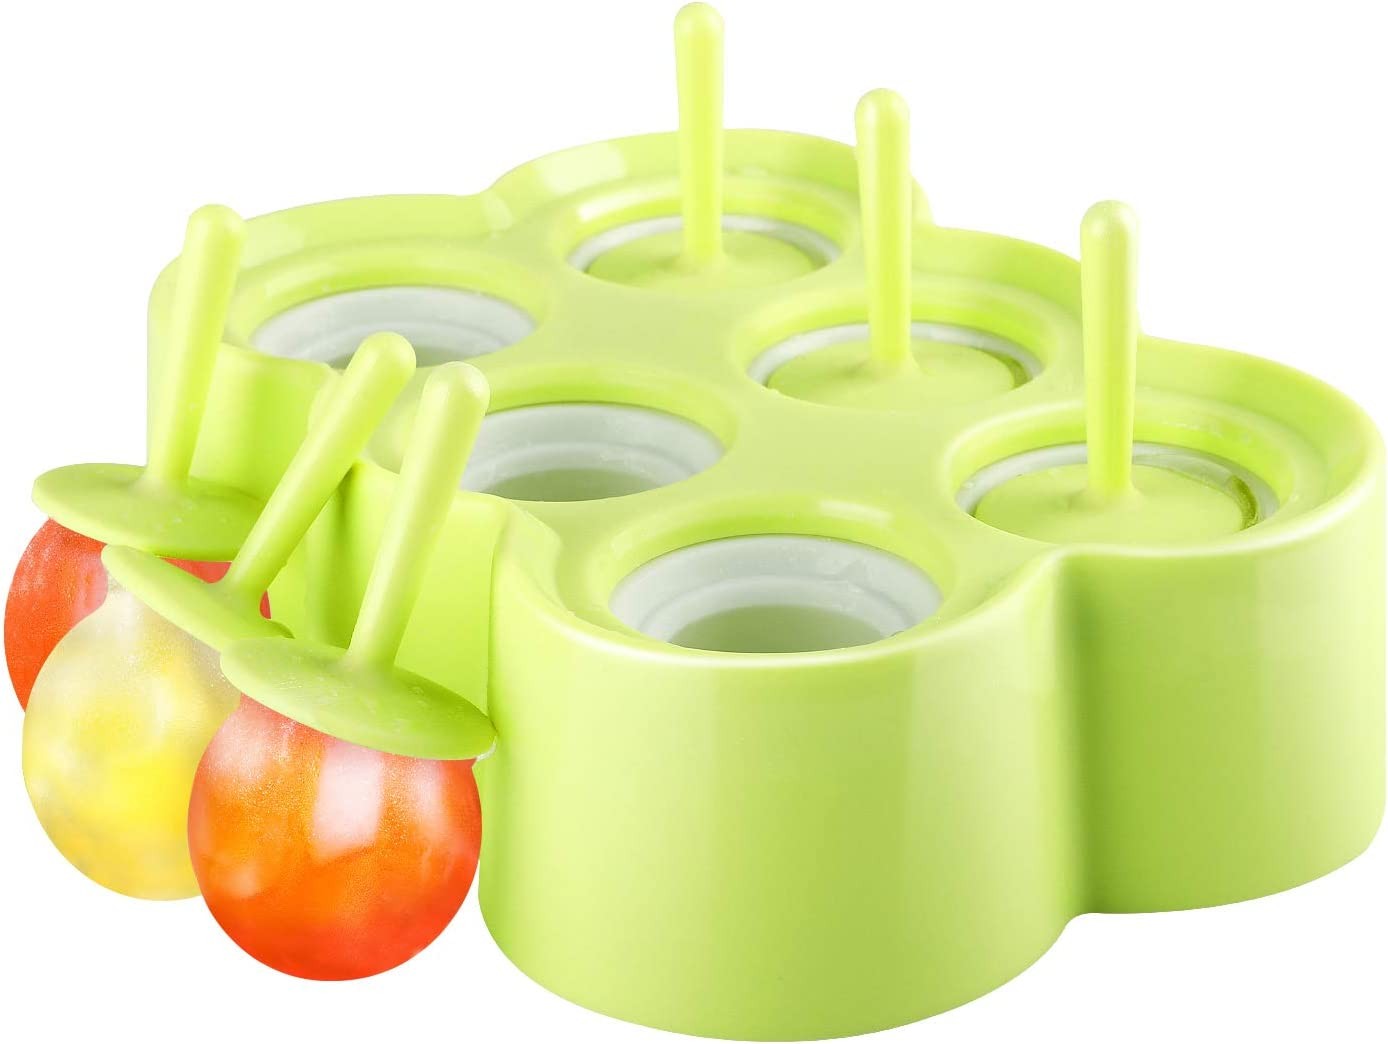 Nuovoware Ice Pop Molds, [Cavity of 6] Premium Silicone Popsicle Makers Ice Pop Makers Rectangle Ice Cream Tray Holders, Family DIY Popsicle Molds, BPA Free, Kitchen Gadget, Green